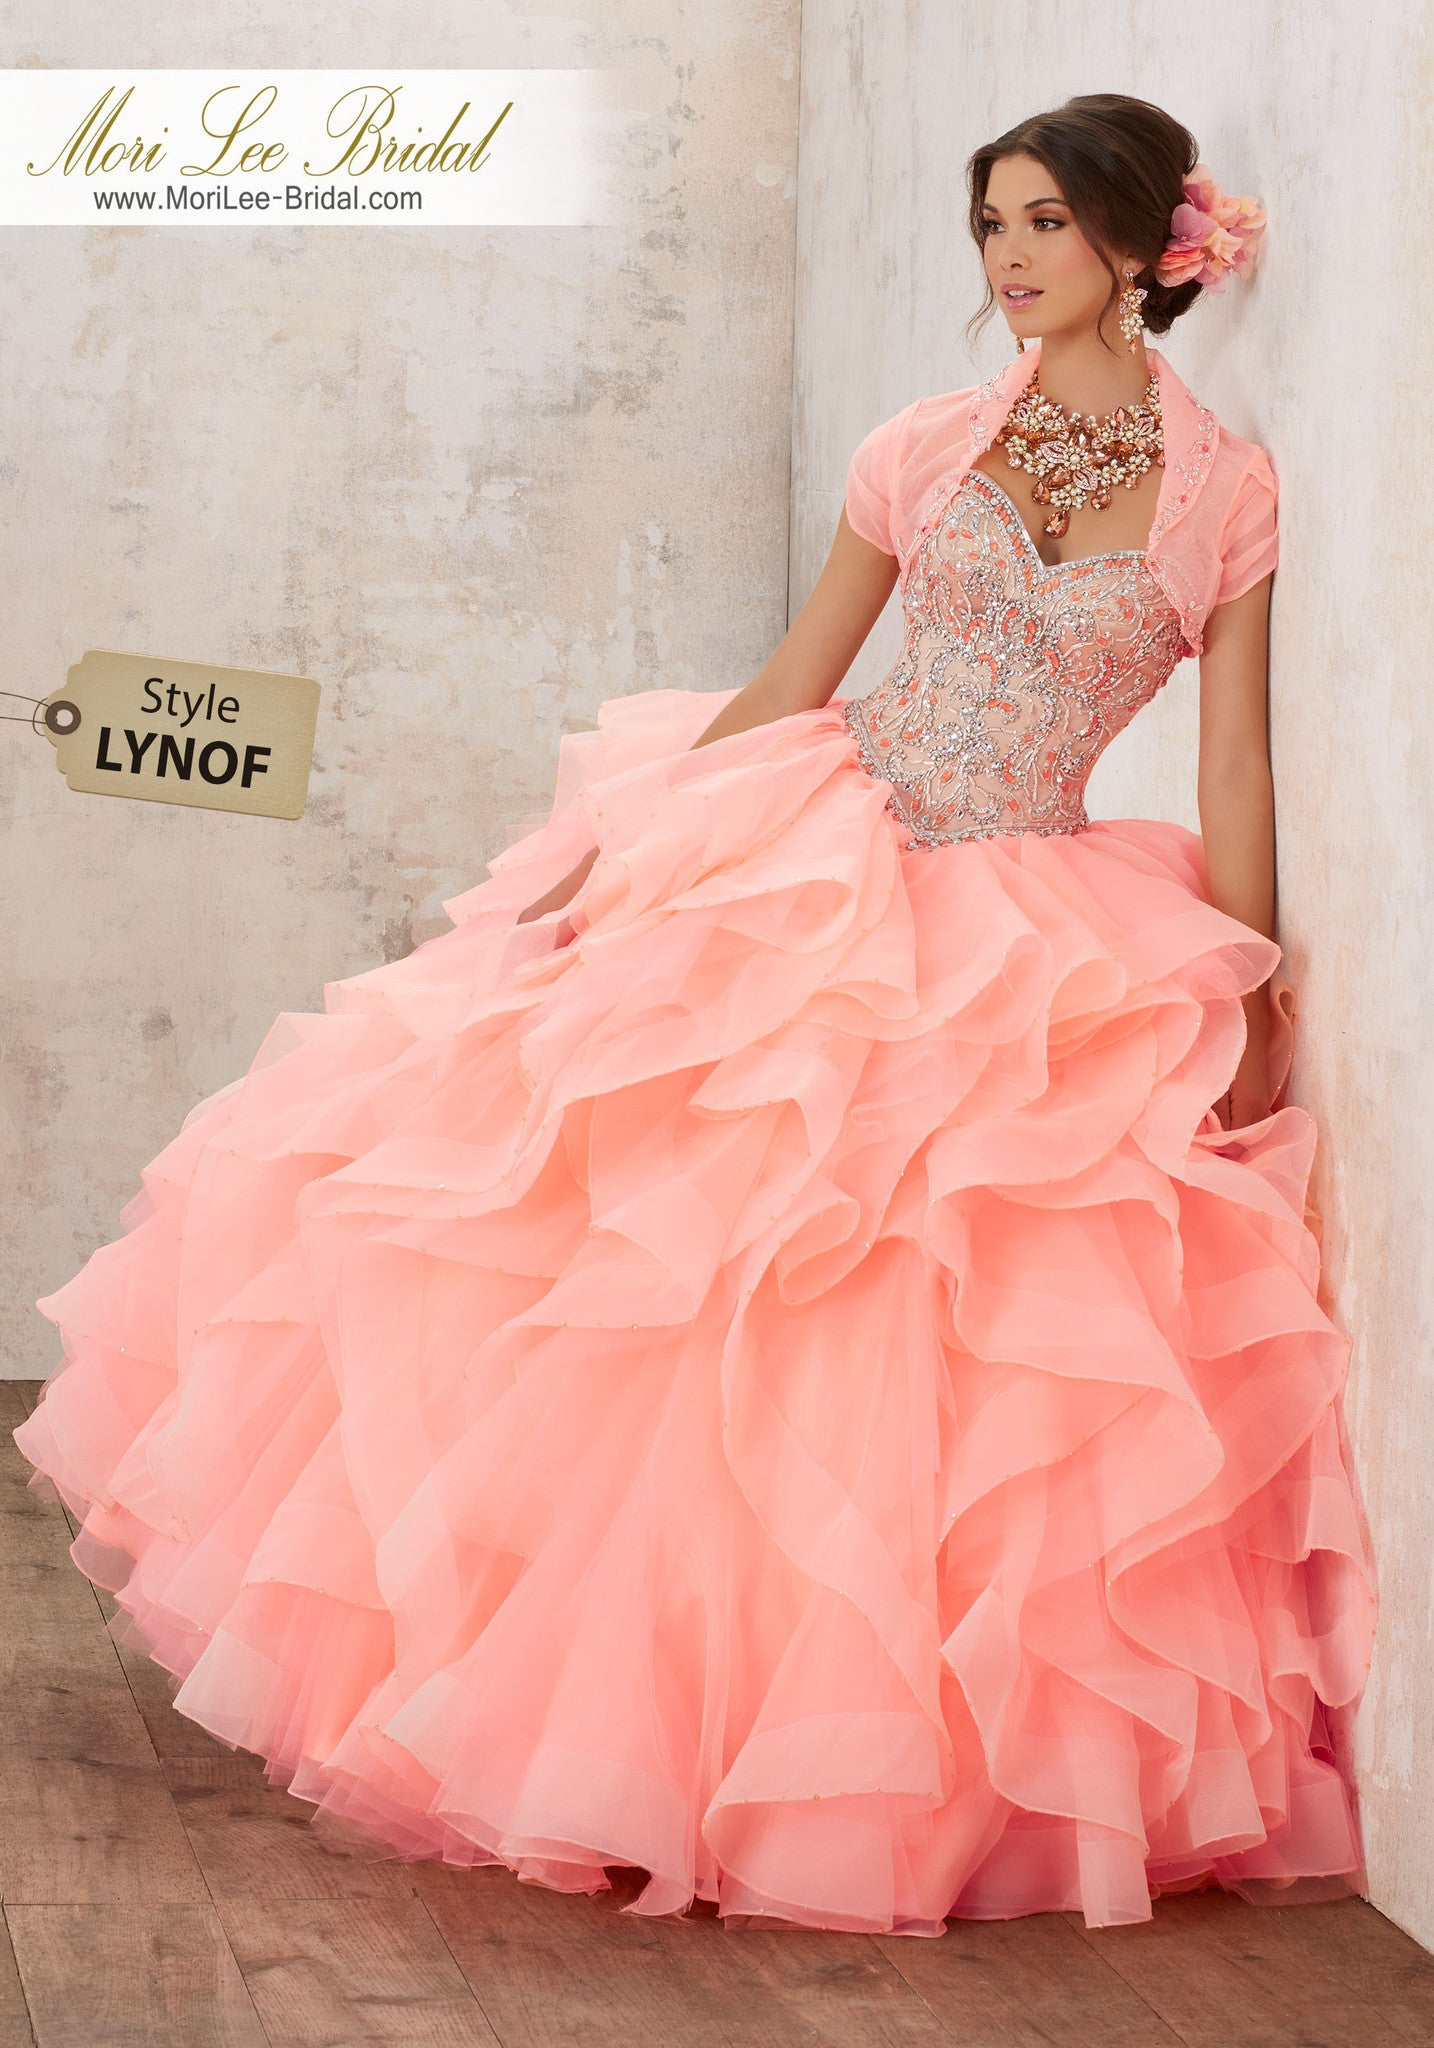 LYNOF - Mori Lee Bridal